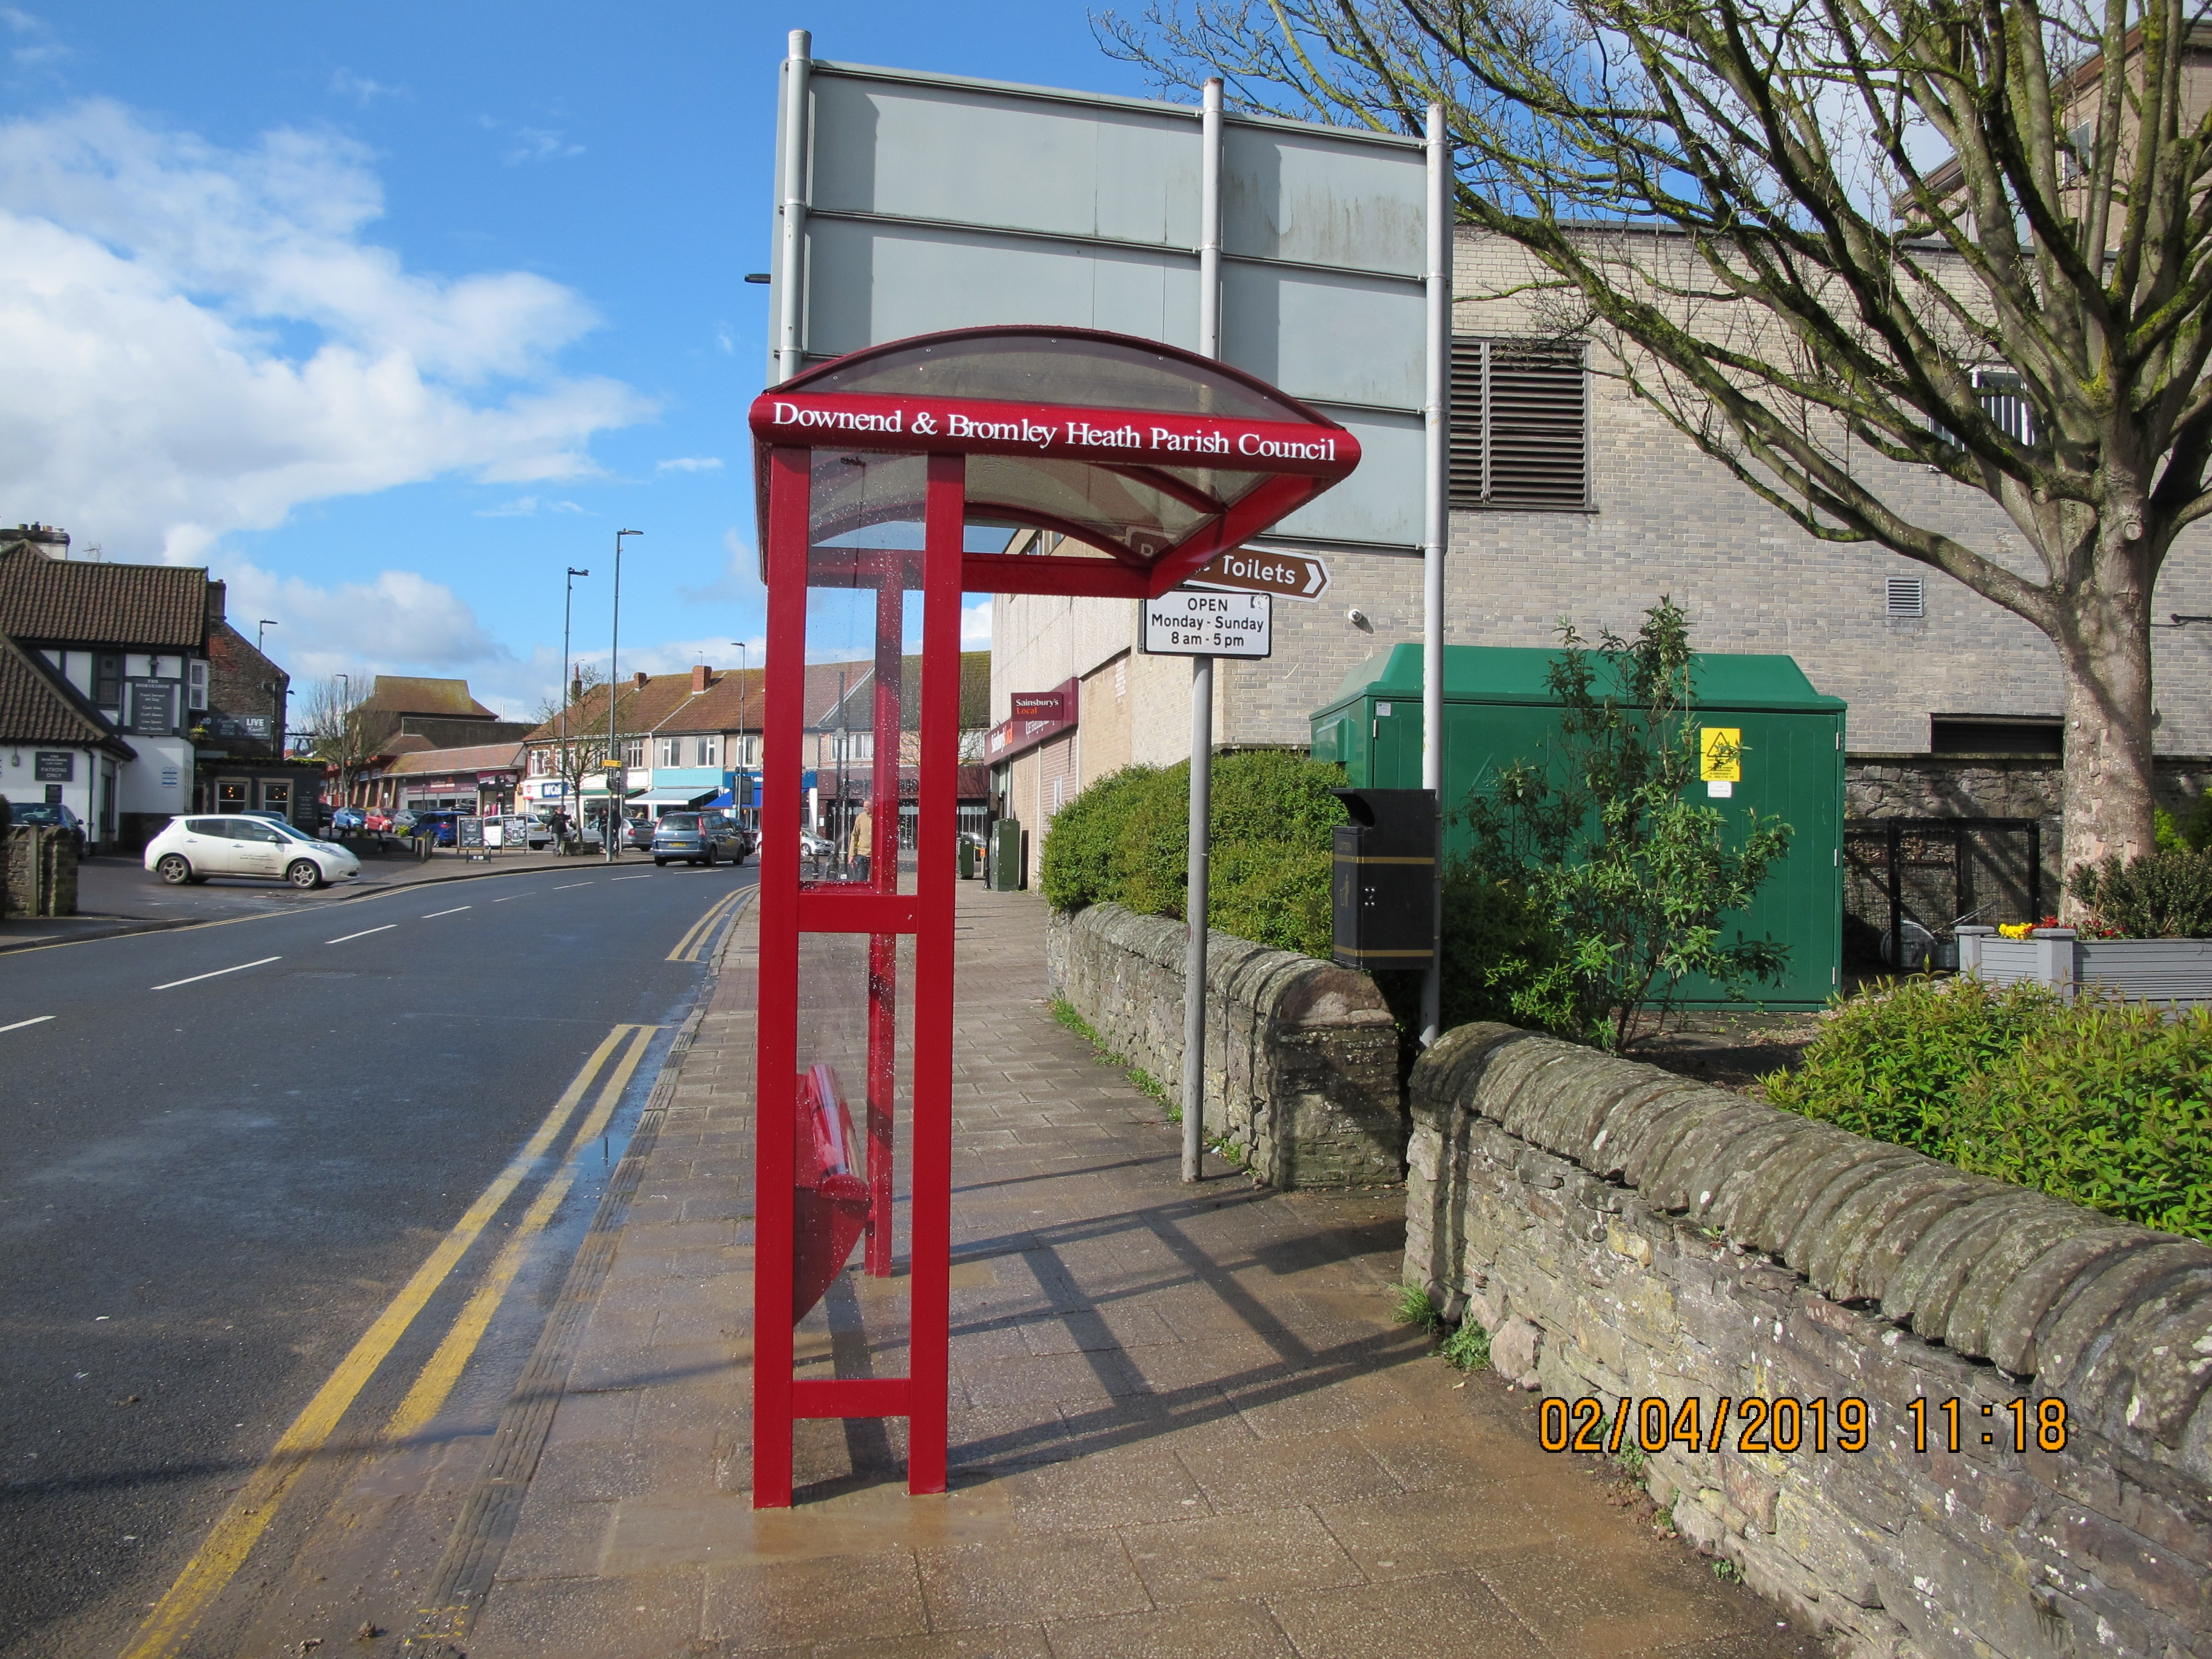 Picture of one of the Parish bus stop shelters